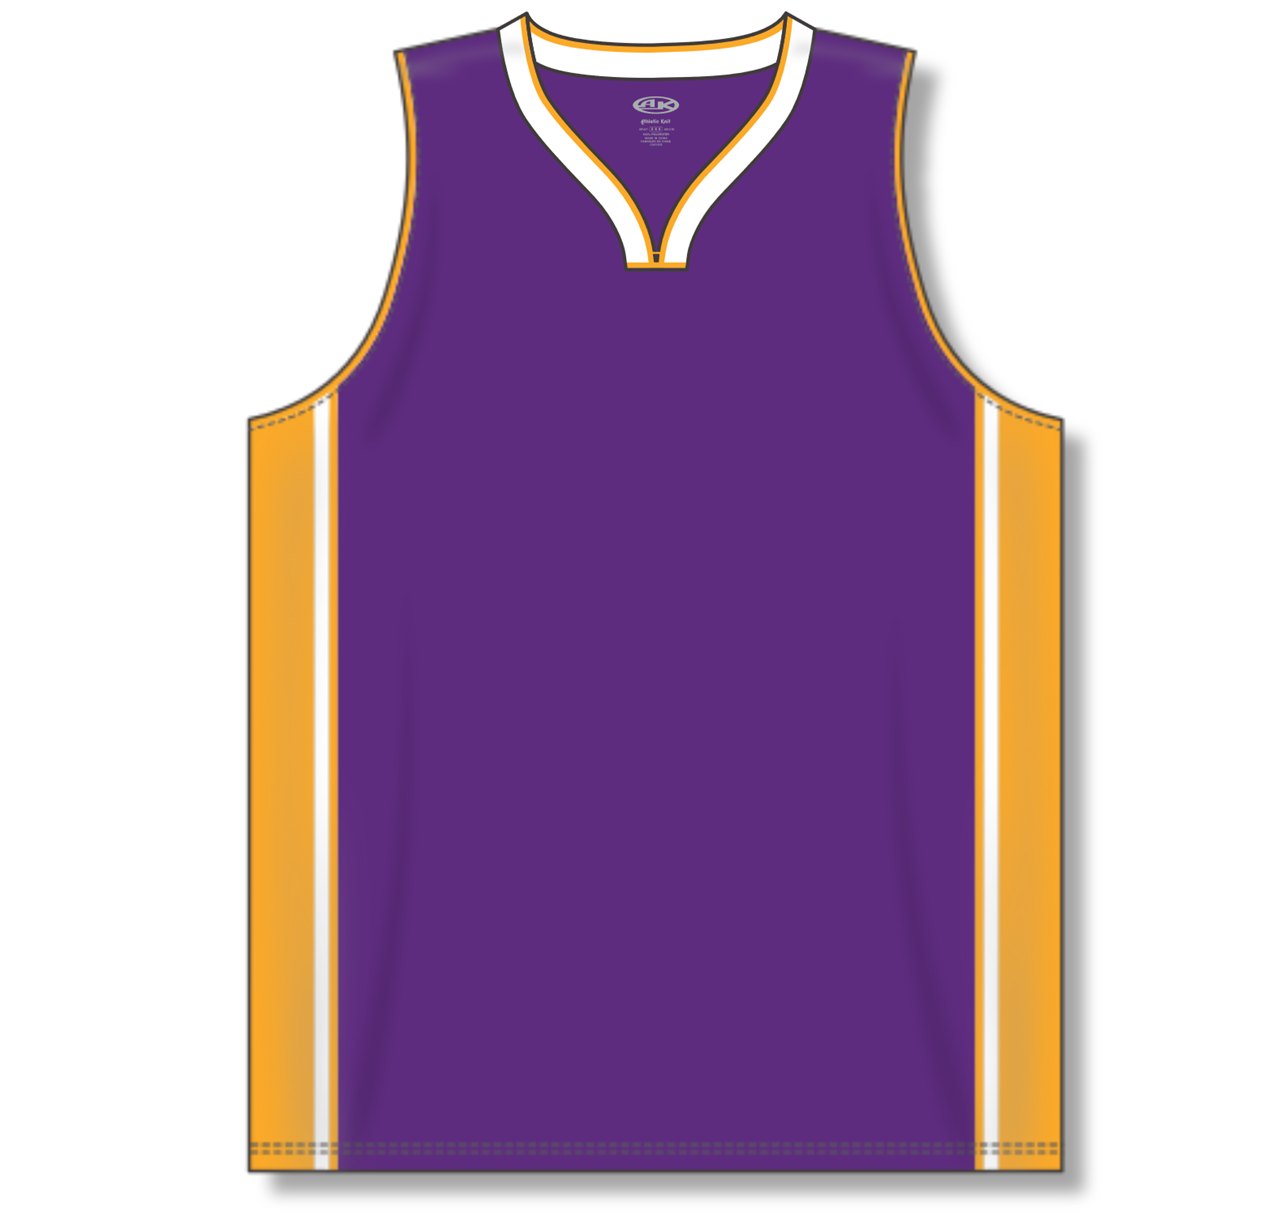 Picture of AK Pro Replica Basketball Jersey (Youth)